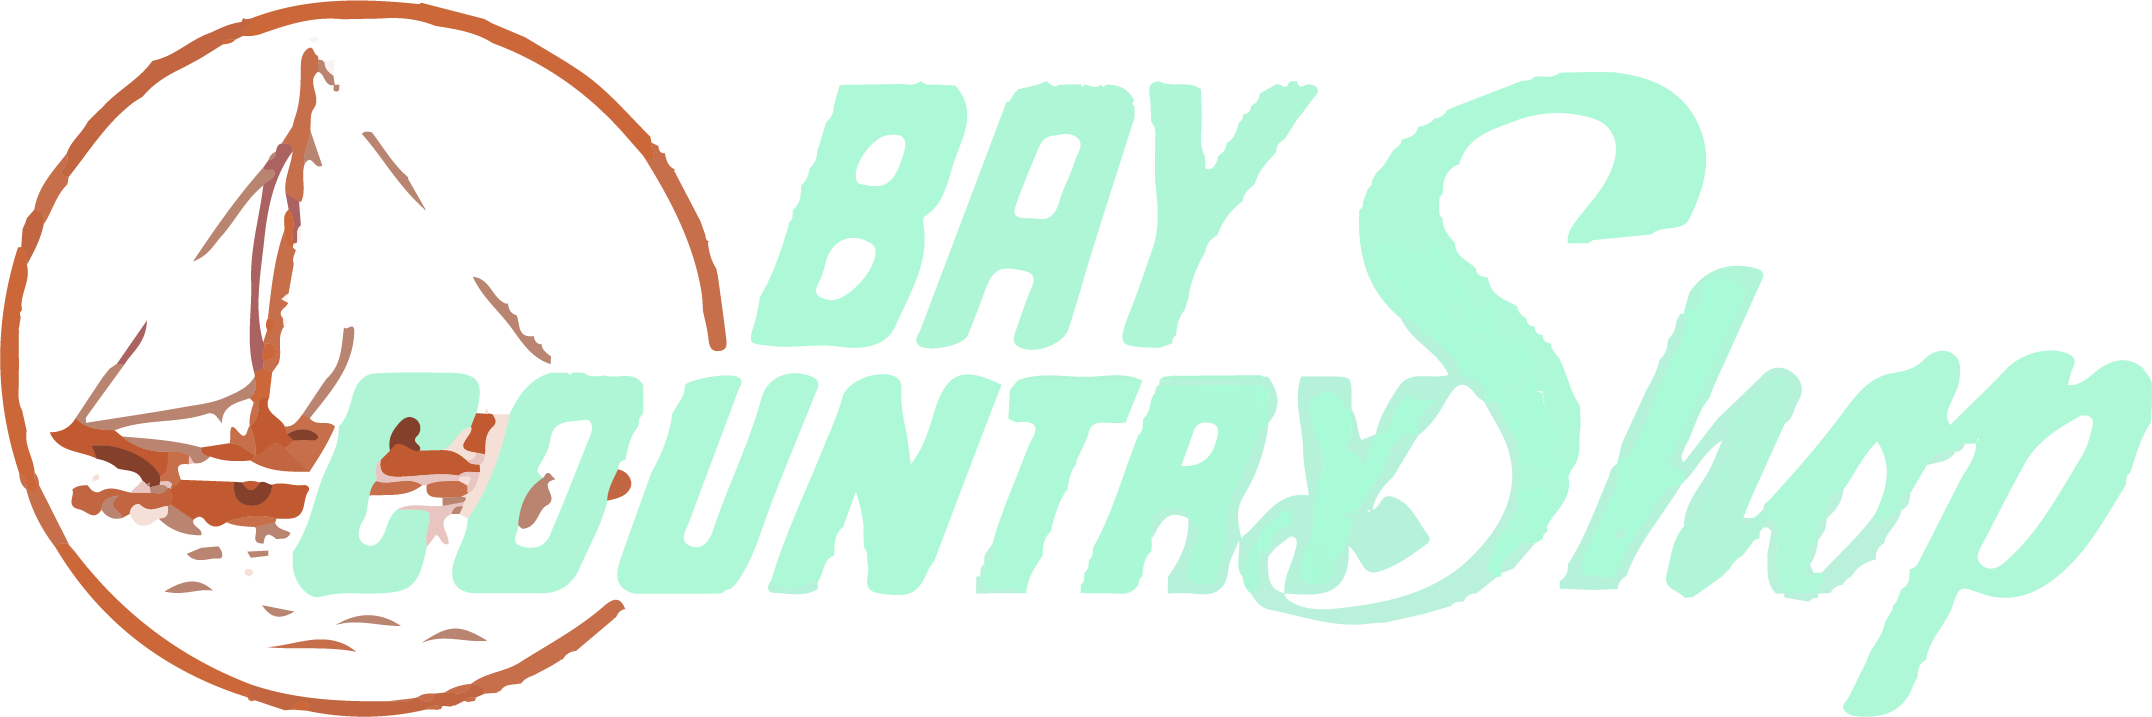 Bay Country Shop, Inc